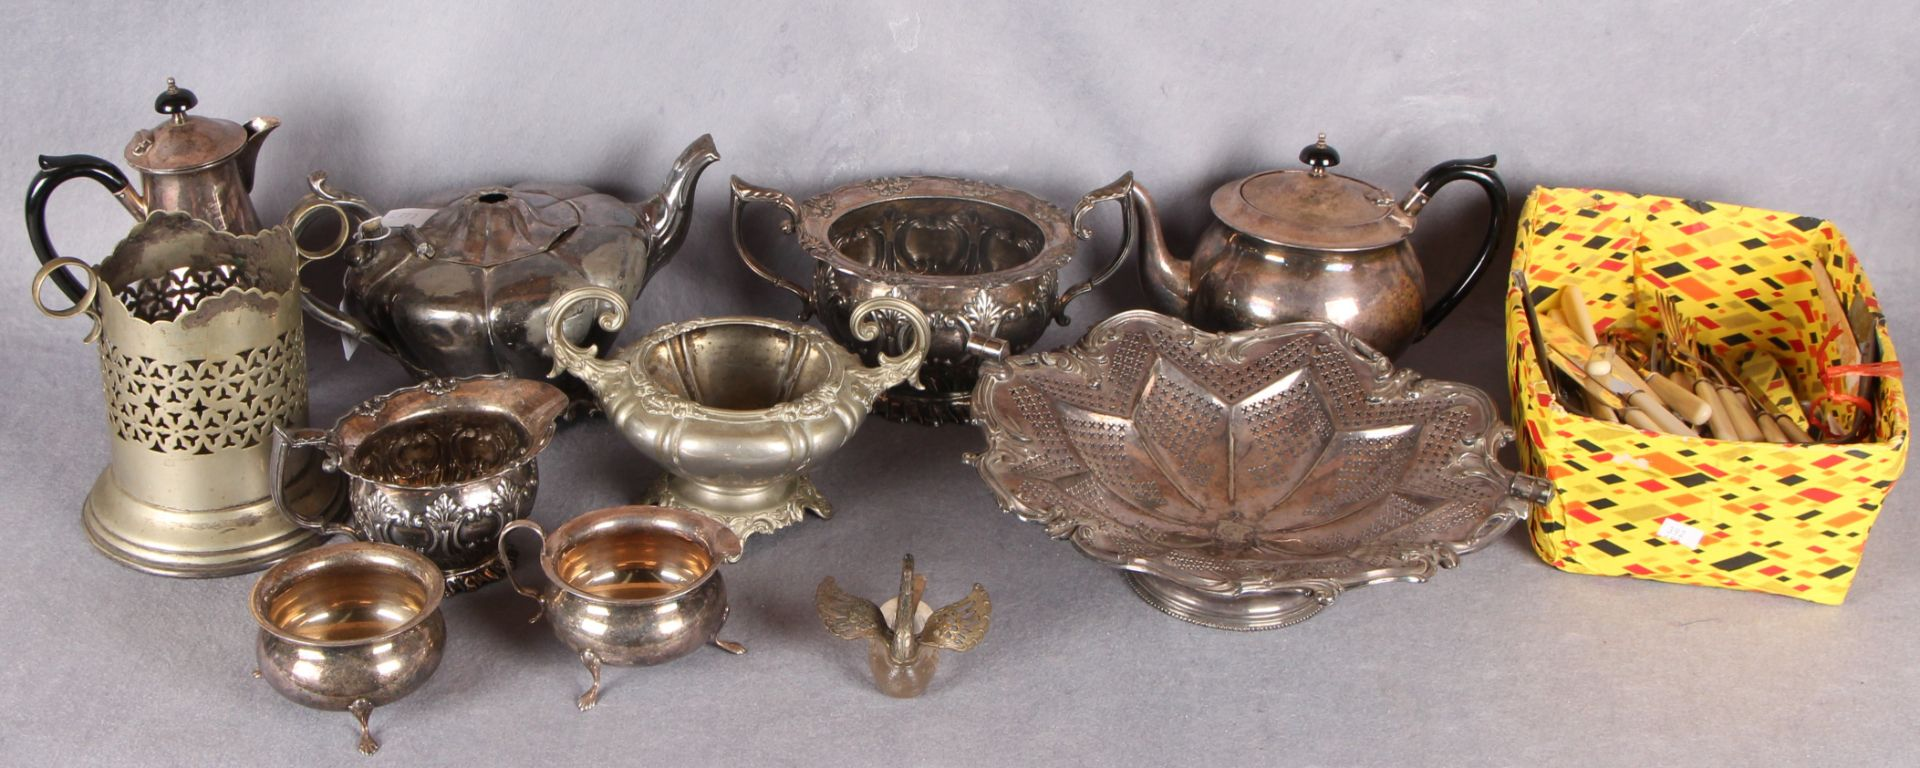 Lot 9 - A quantity of plated wares including four piece tea service;